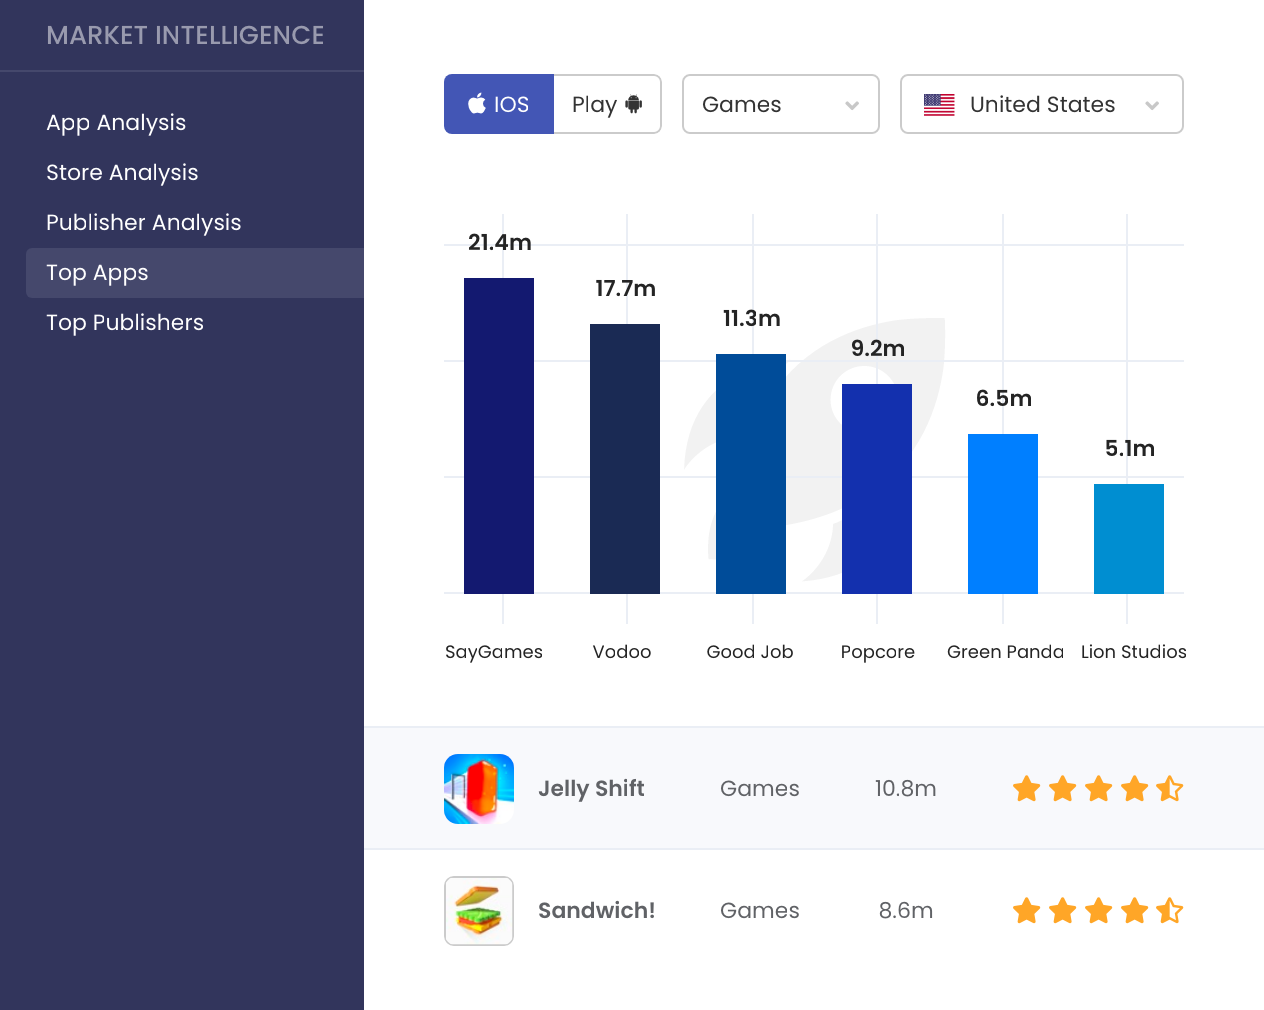 MobileAction's Market Intelligence Top Apps Tool